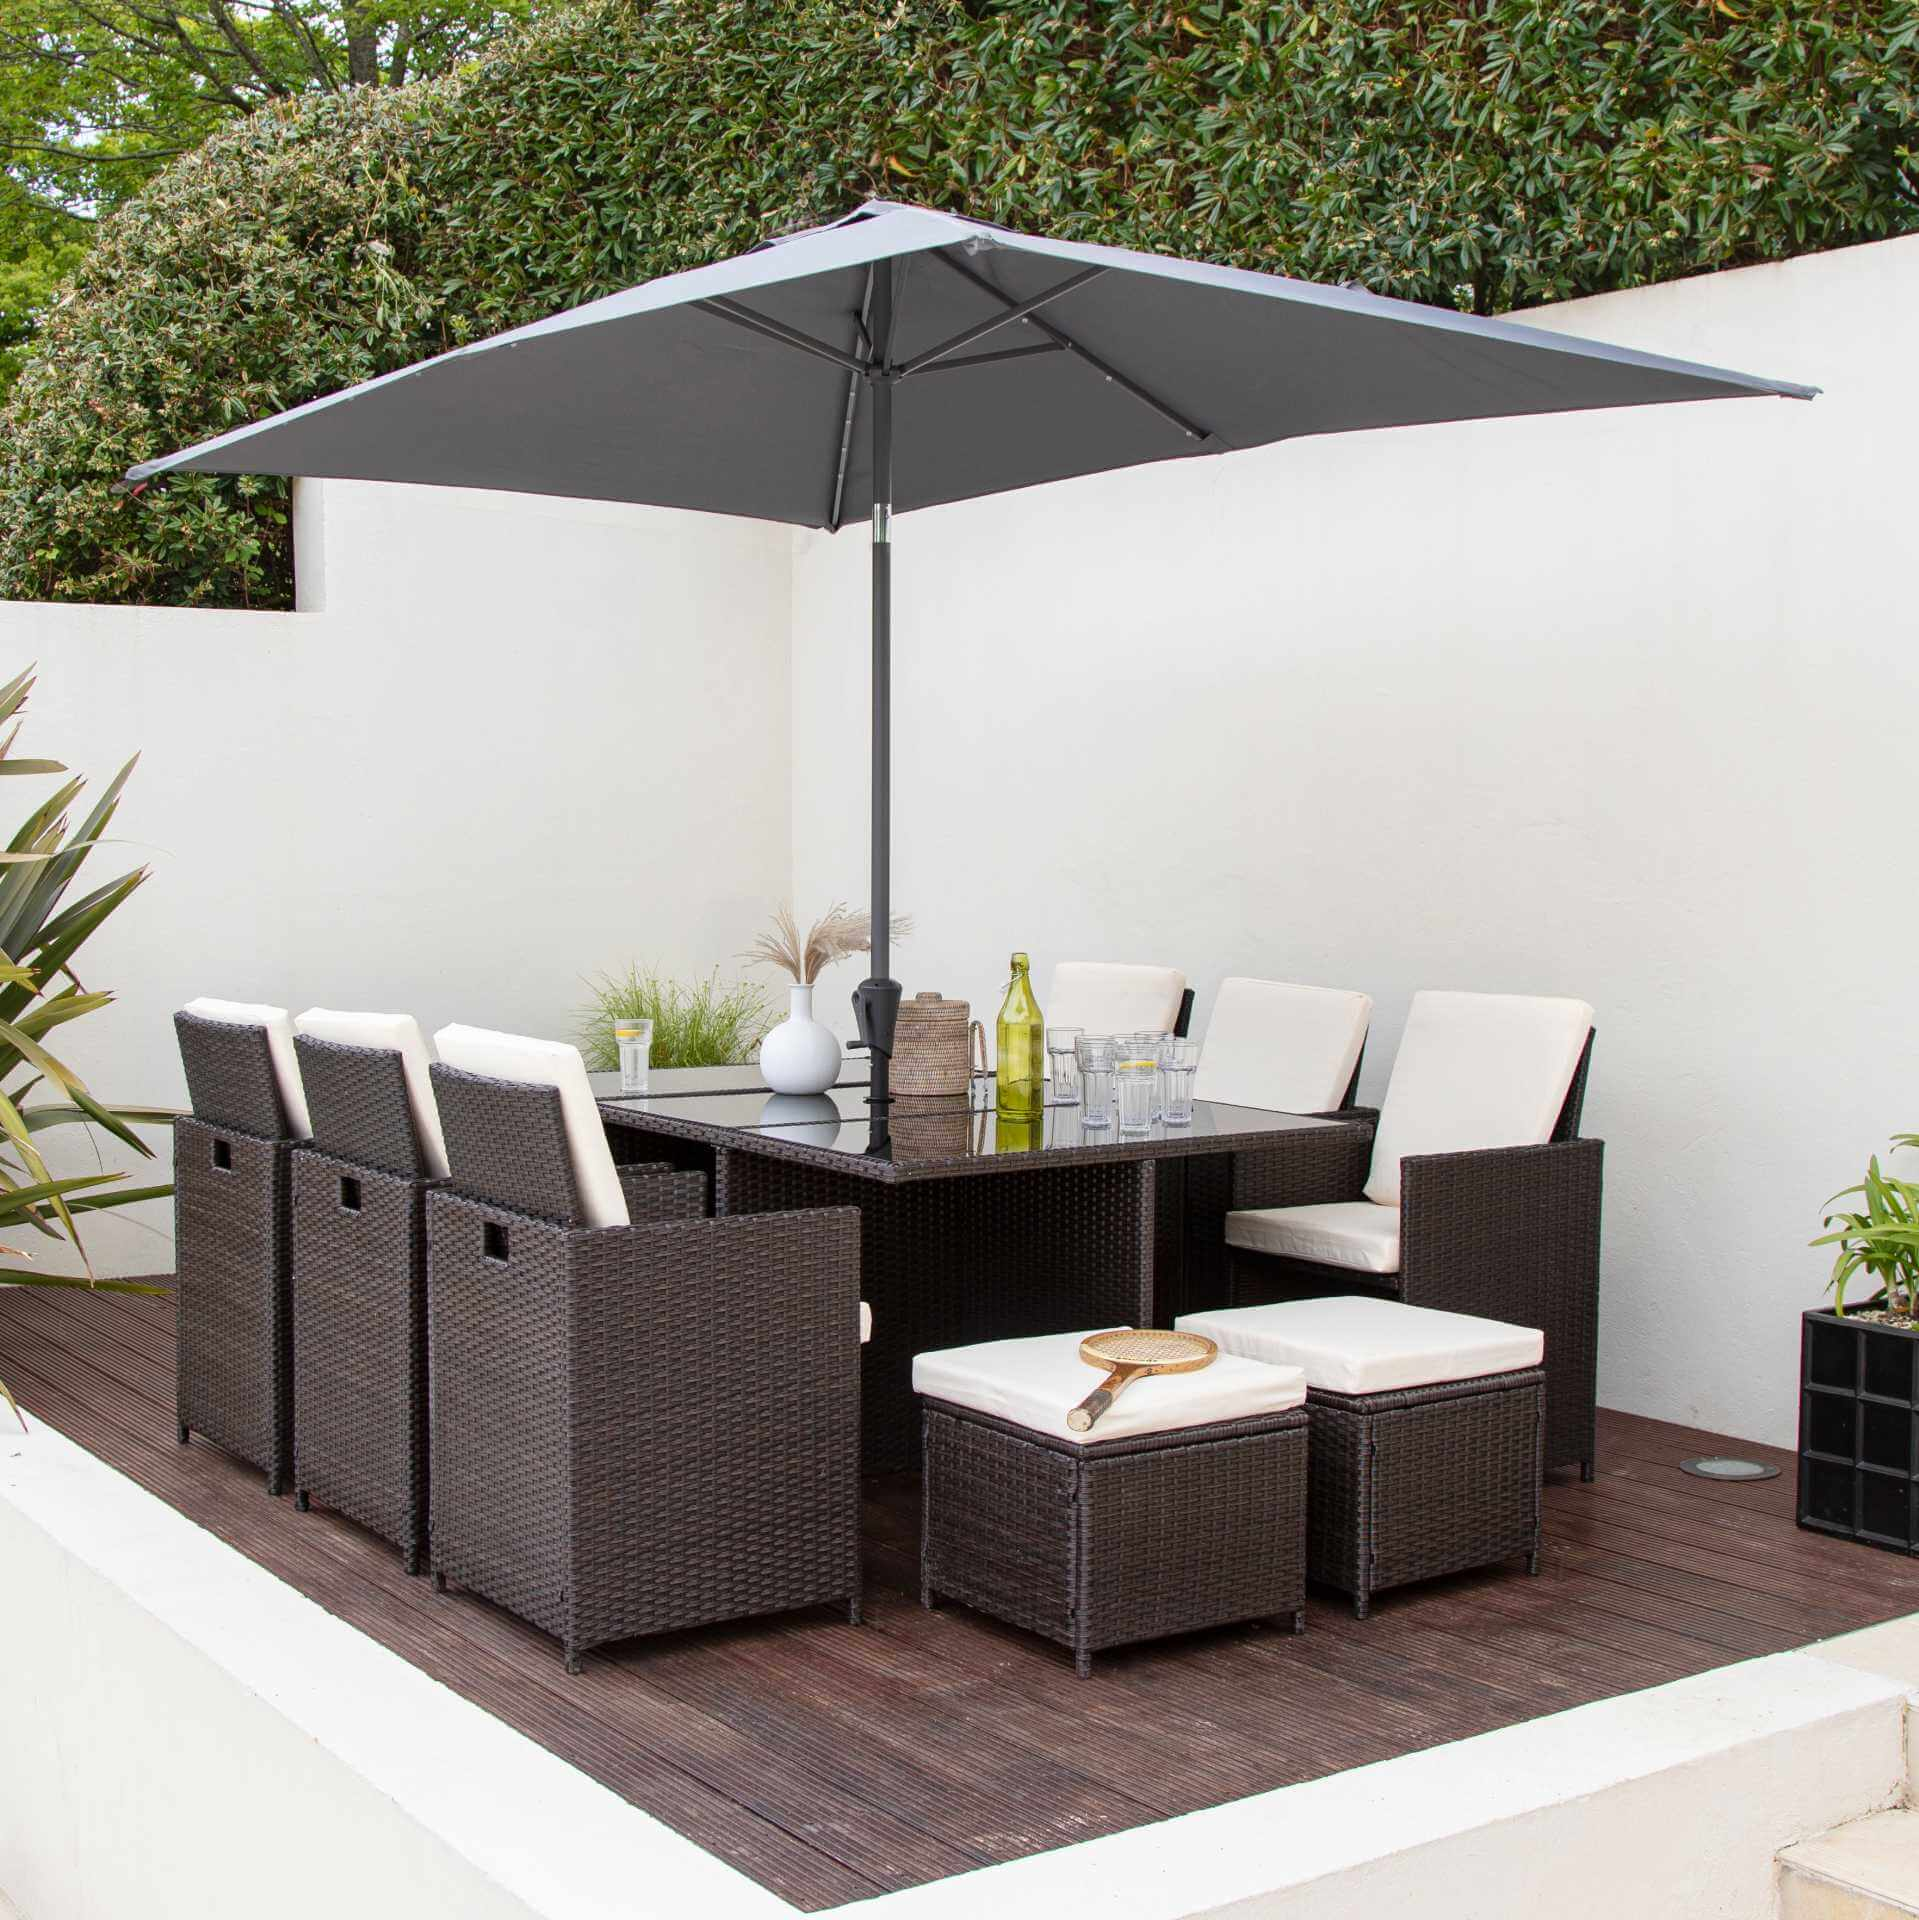 10 Seater Rattan Cube Garden Dining Set with Parasol - Mixed Brown Weave